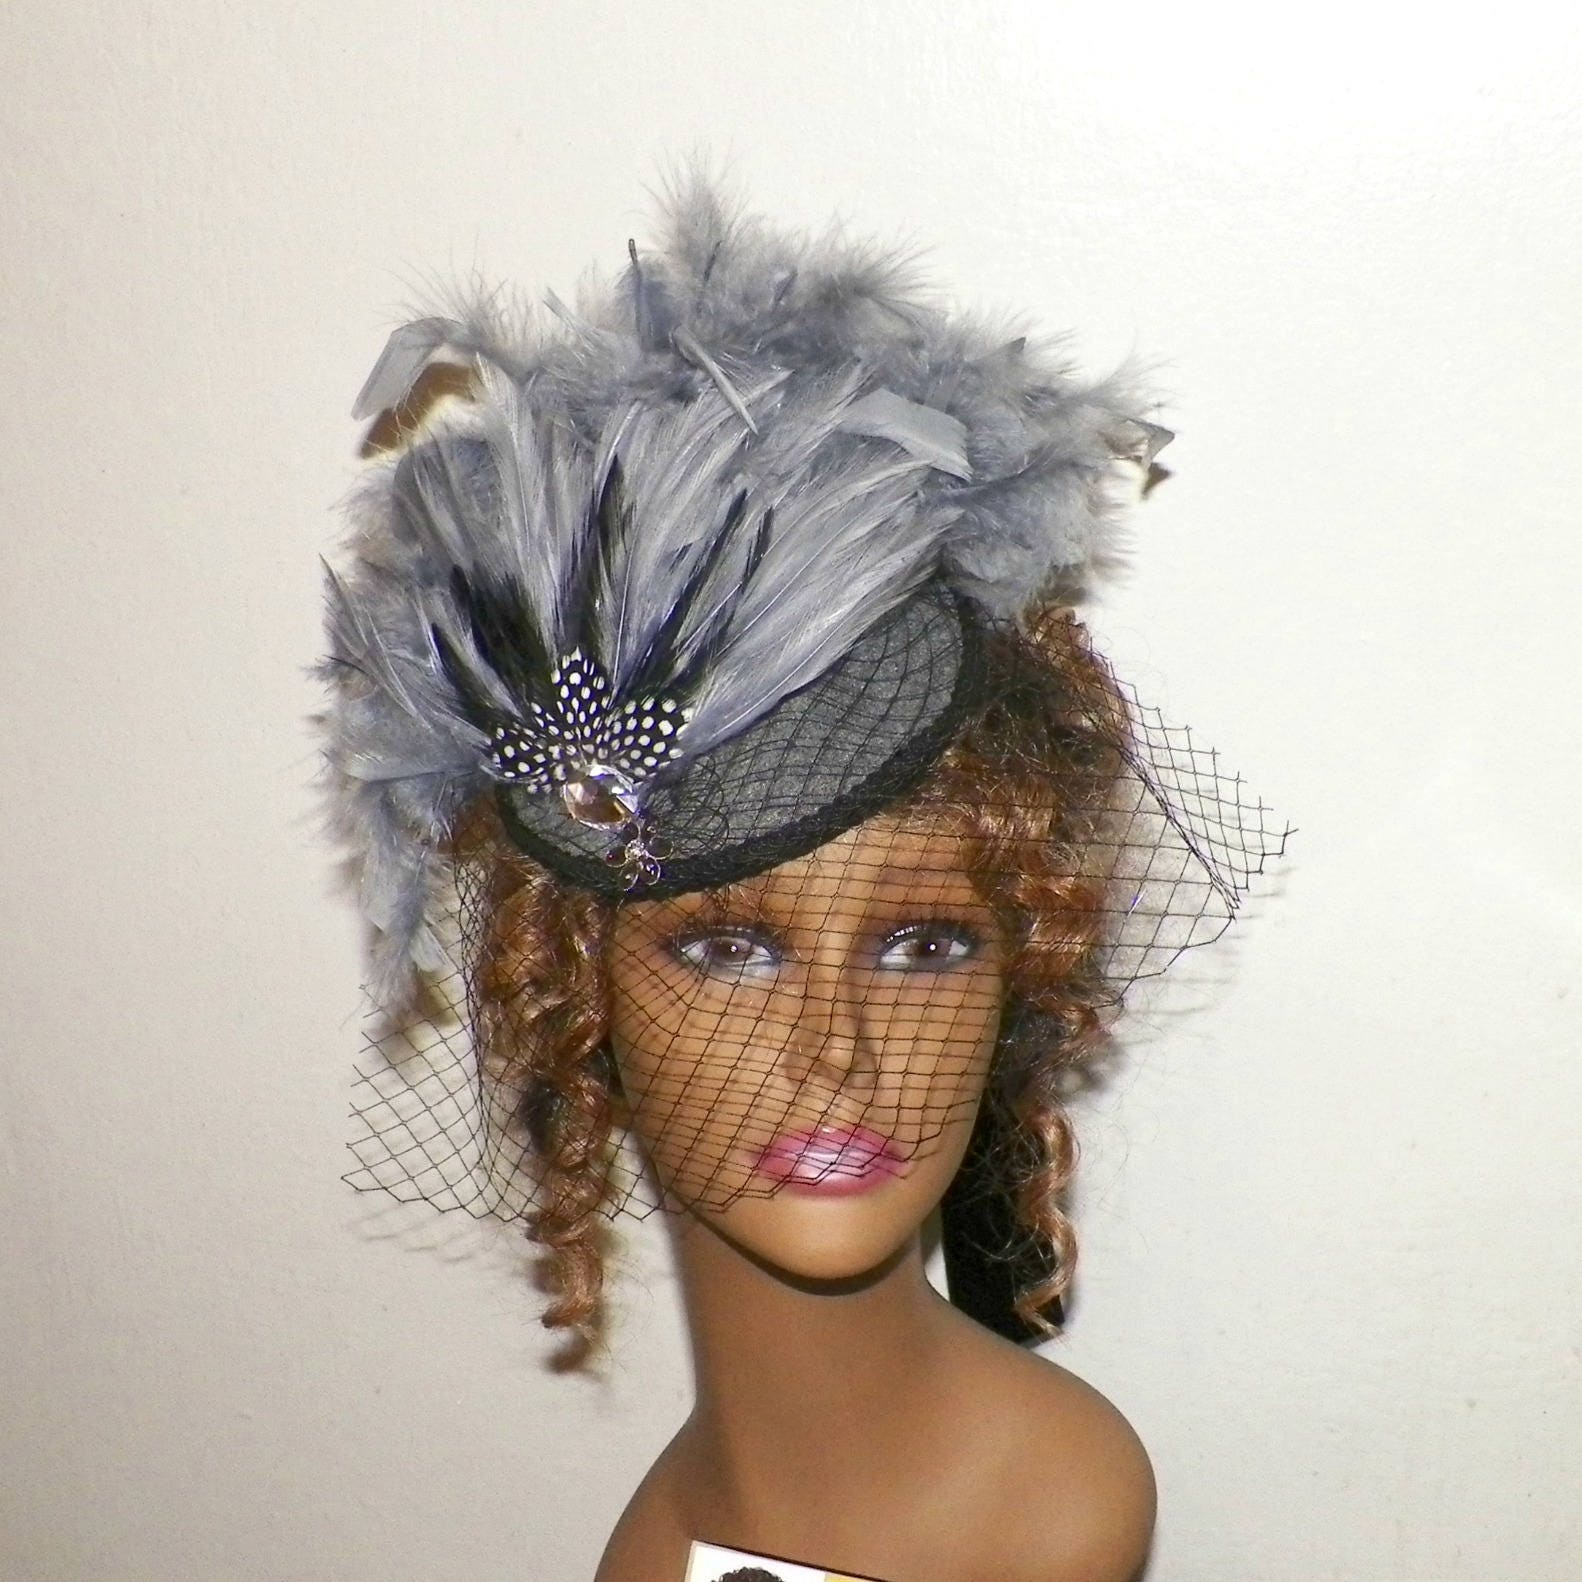 Gray,Hat,Fascinator,Black,Victorian,Steampunk,Cocktail,Feather,Gothic,Lolita,Headpiece,Old,West,Costume,Marie,Antoinette,Accessories,womans_hat,victorian_hat,Marie_Antoinette,gothic_headdress,lolita_hat,gothic_fascinator,steampunk_hat,feather_headdress,black_fascinator,steampunk_fascinator,gray_hat,cocktail_hat